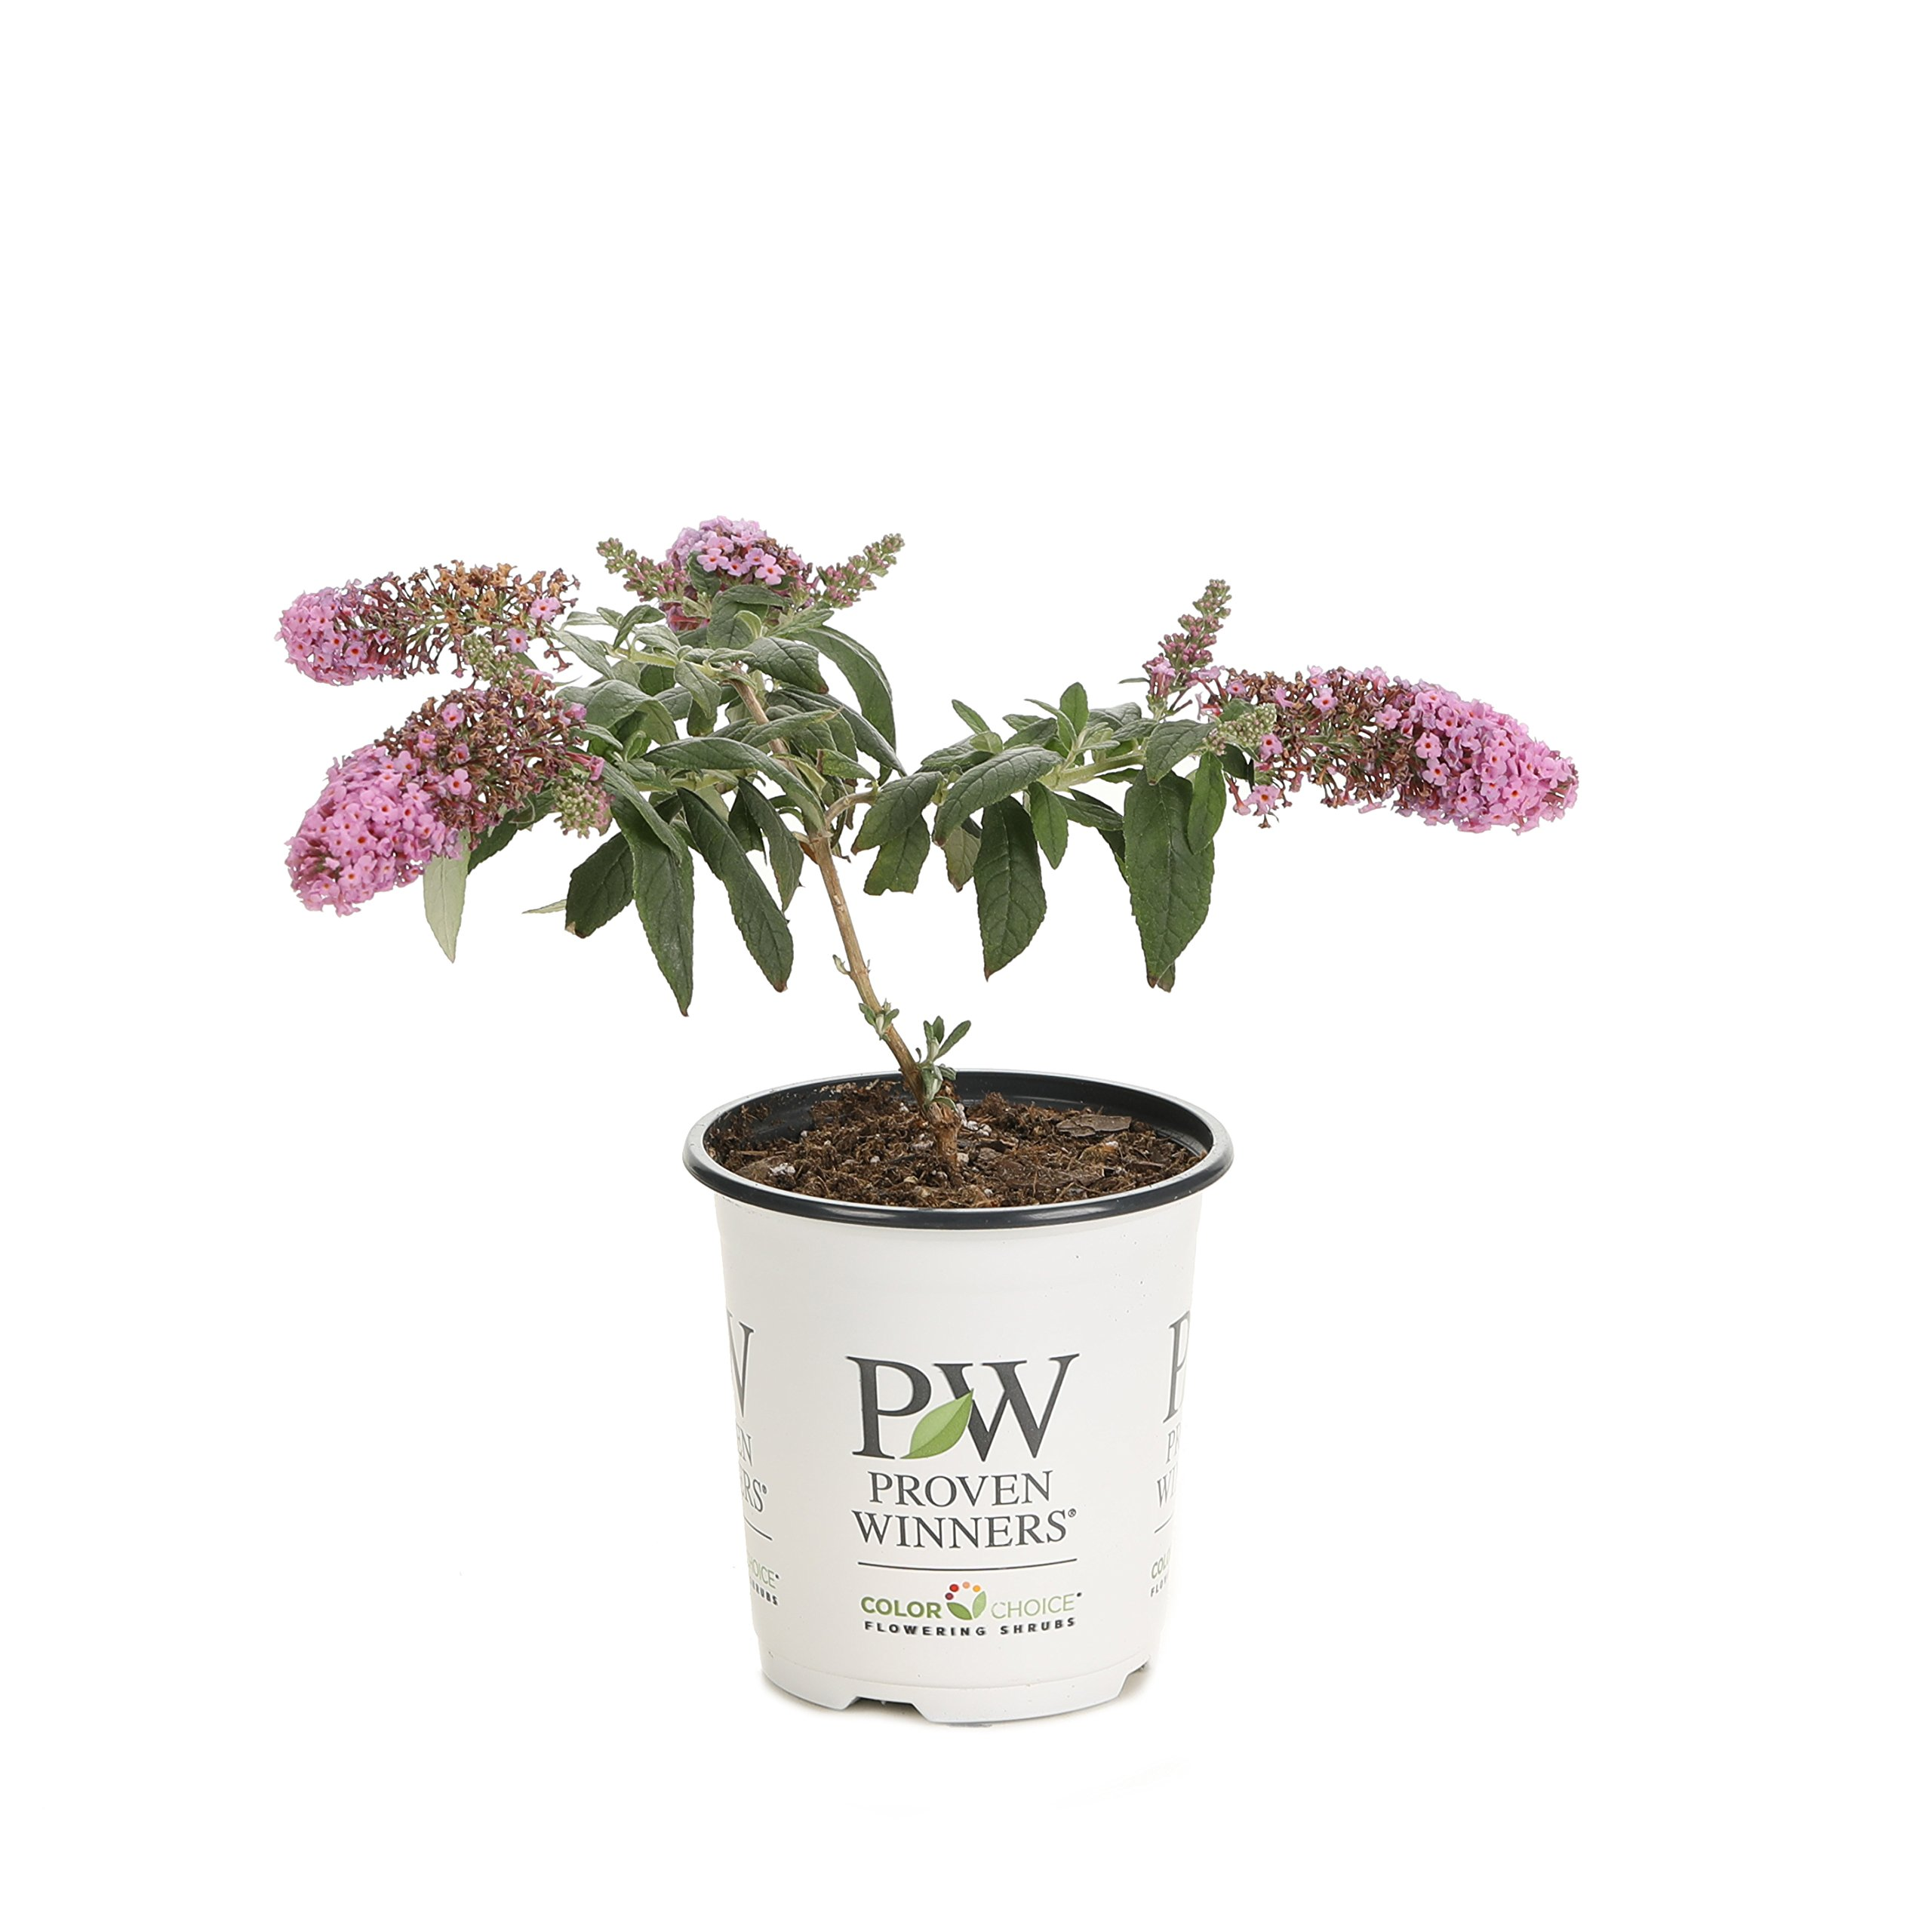 Pugster Pink Butterfly Bush (Buddleia) Live Shrub, Pink Flowers, 4.5 in. Quart